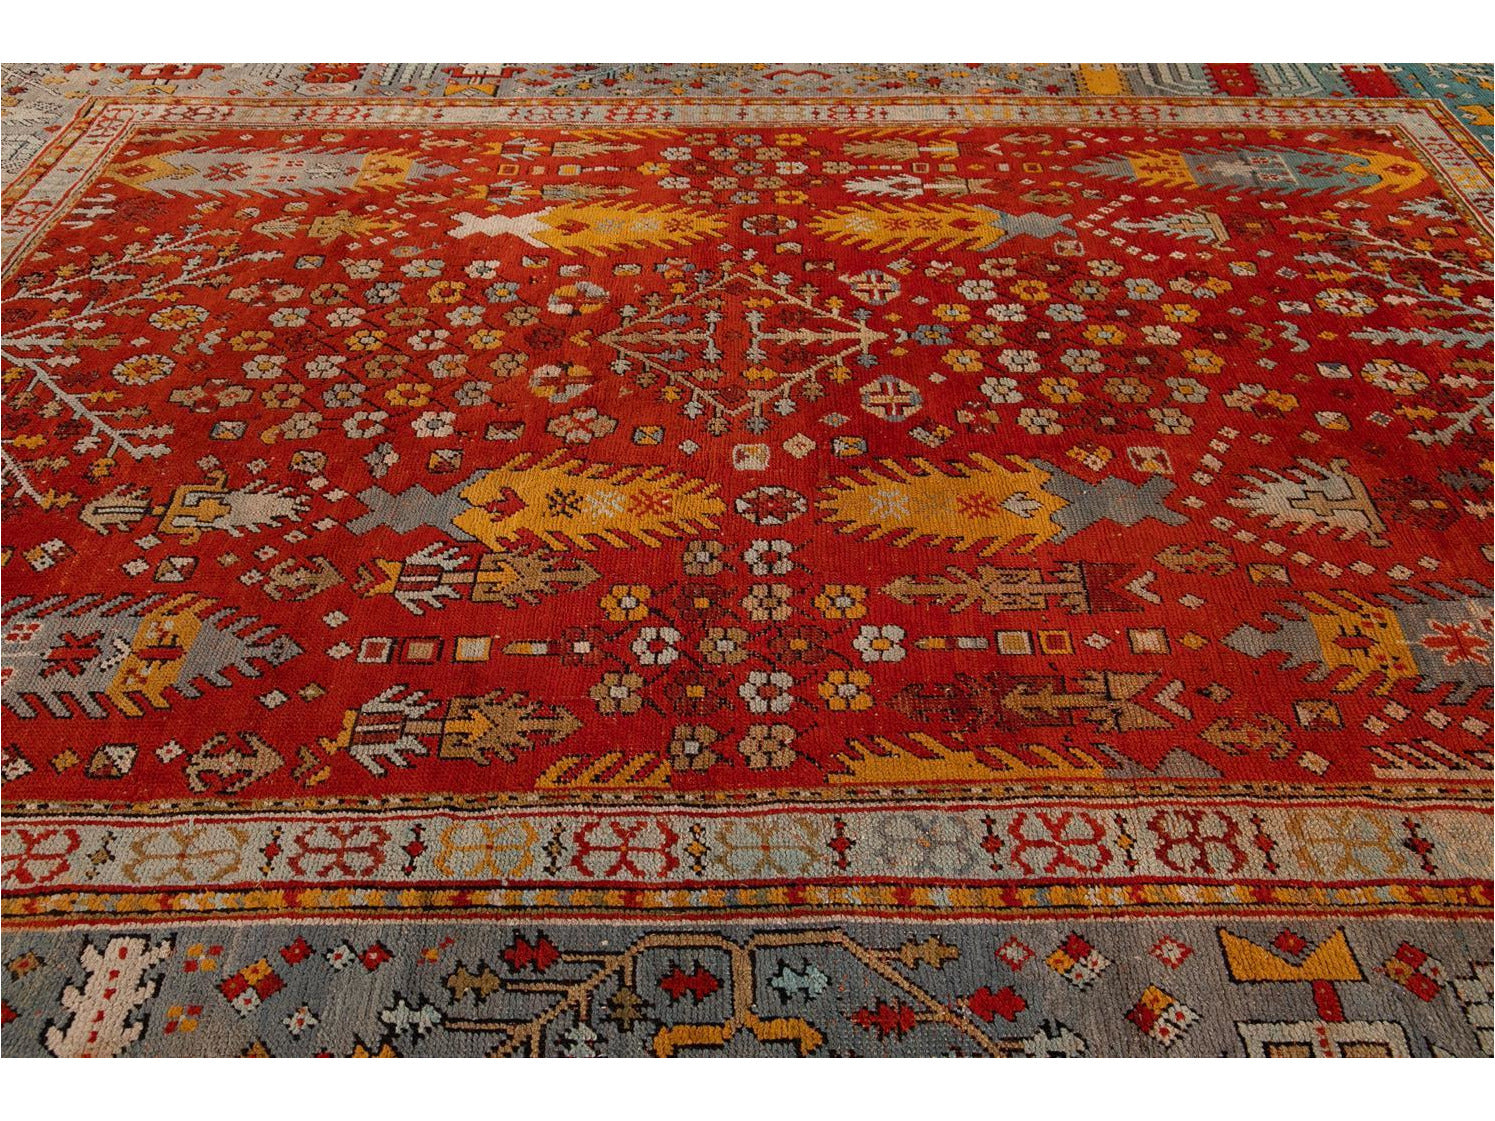 Late 19th Century Antique Oversize Oushak Wool Rug 12' x 15'